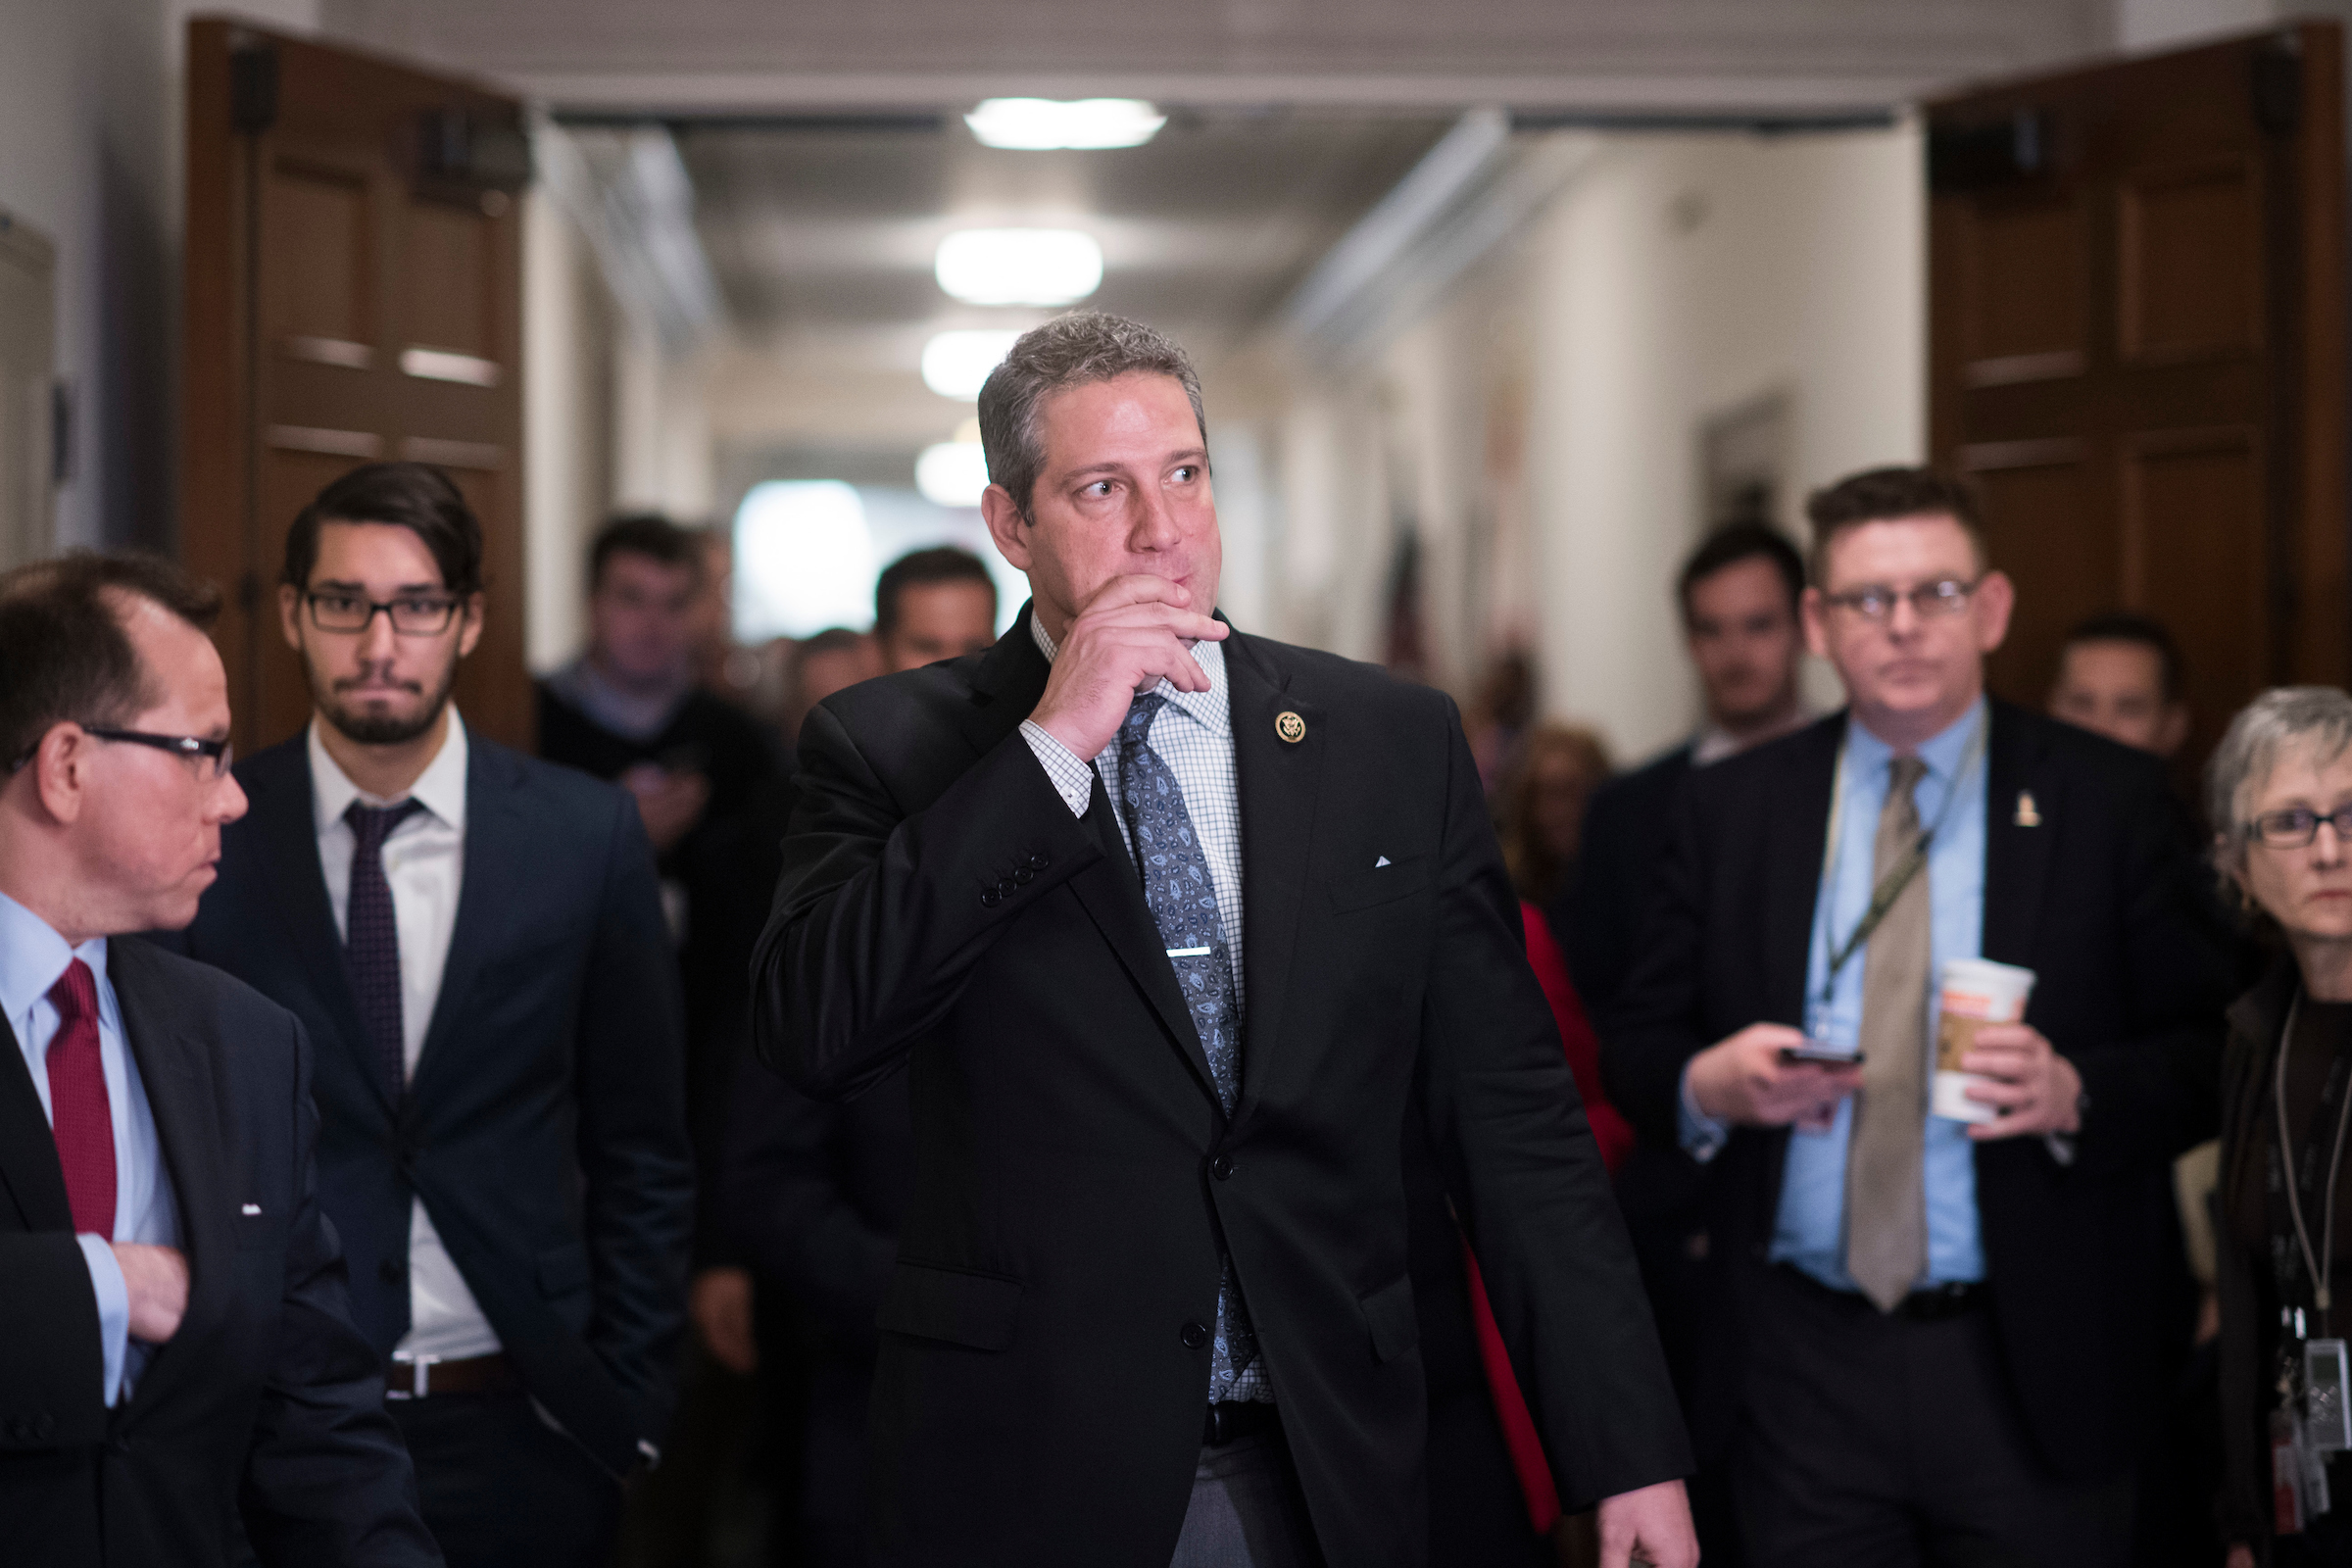 Ohio Rep. Tim Ryan speaks with the media after losing the race for Democratic leader to House Minority Leader Nancy Pelosi on Wednesday. (Tom Williams/CQ Roll Call)